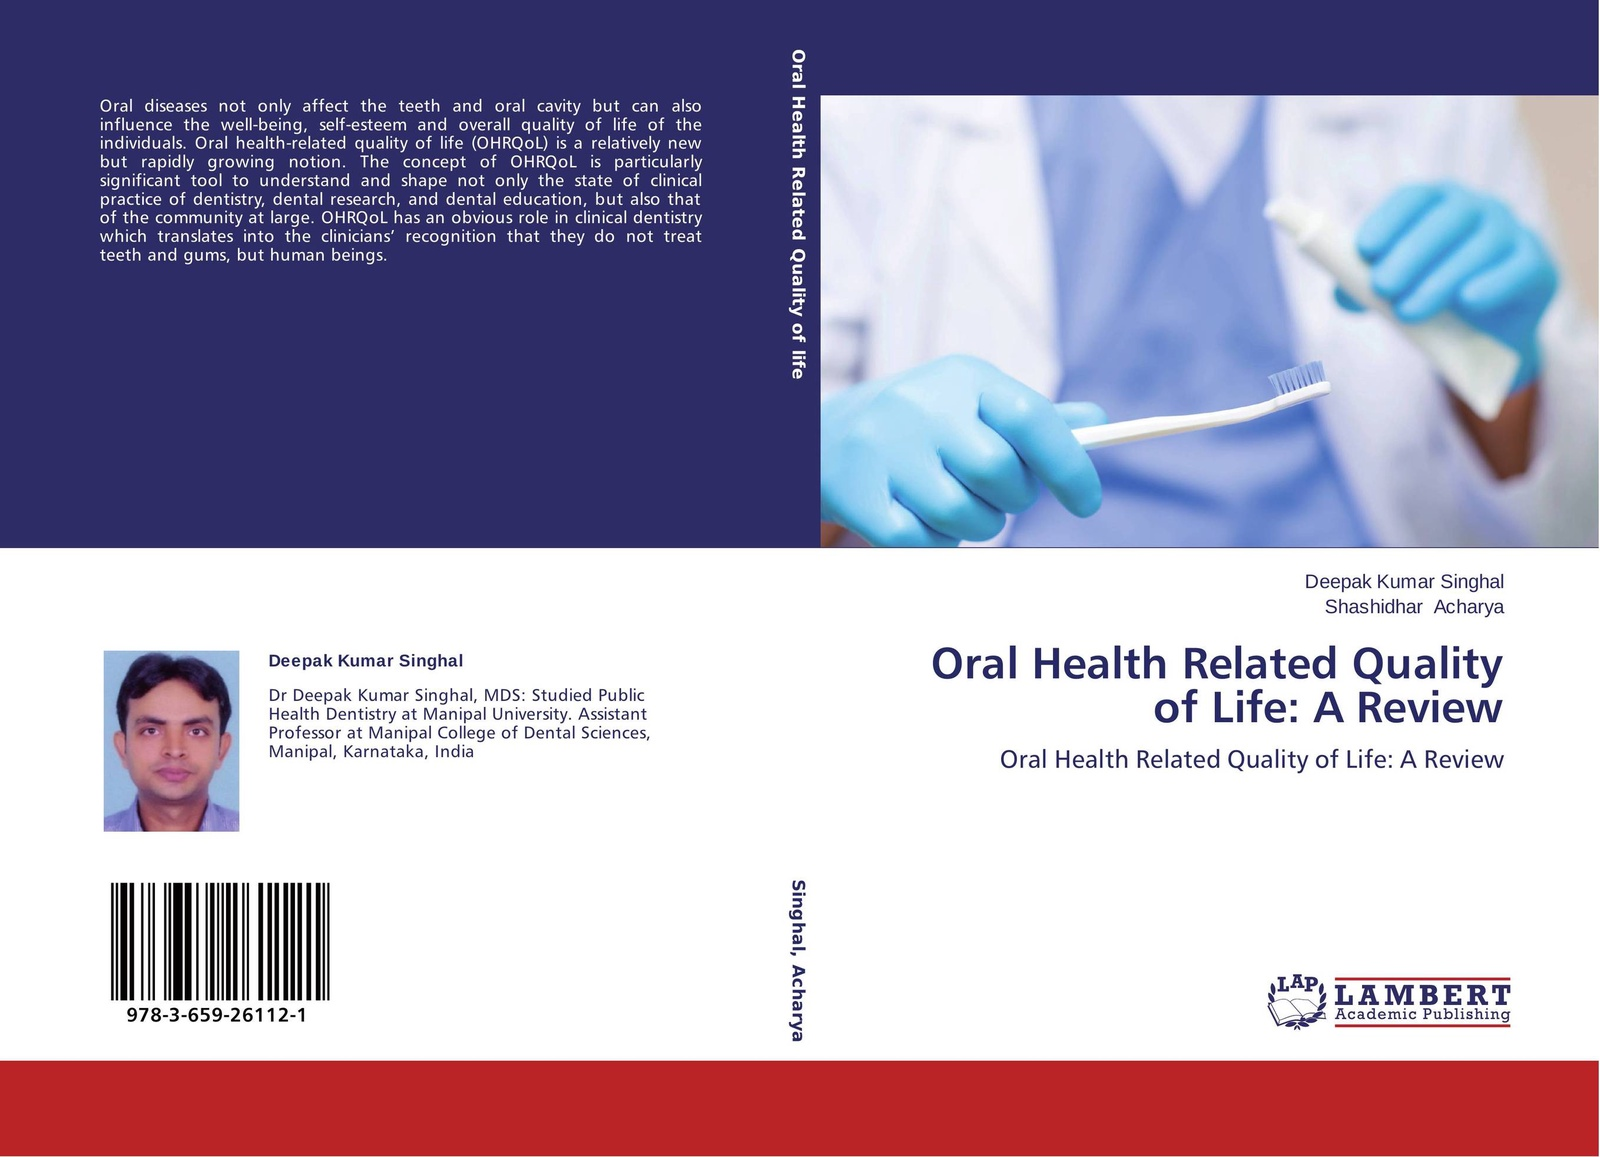 DEEPAK KUMAR SINGHAL and Shashidhar Acharya Oral Health Related Quality of Life: A Review цена в Москве и Питере